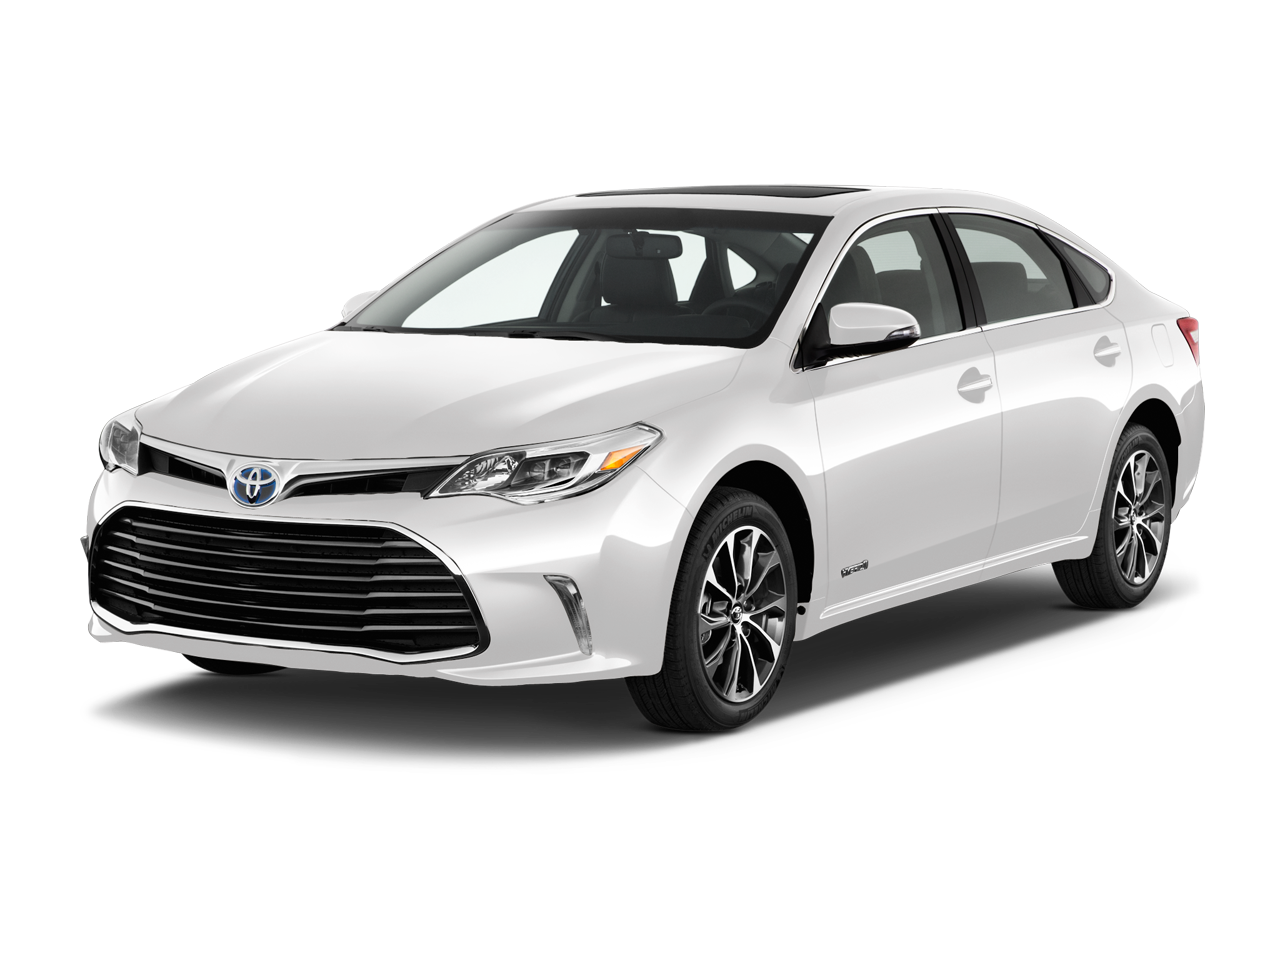 new 2018 toyota avalon hybrid hybrid xle premium lee 39 s summit mo near lees summit mo adams. Black Bedroom Furniture Sets. Home Design Ideas